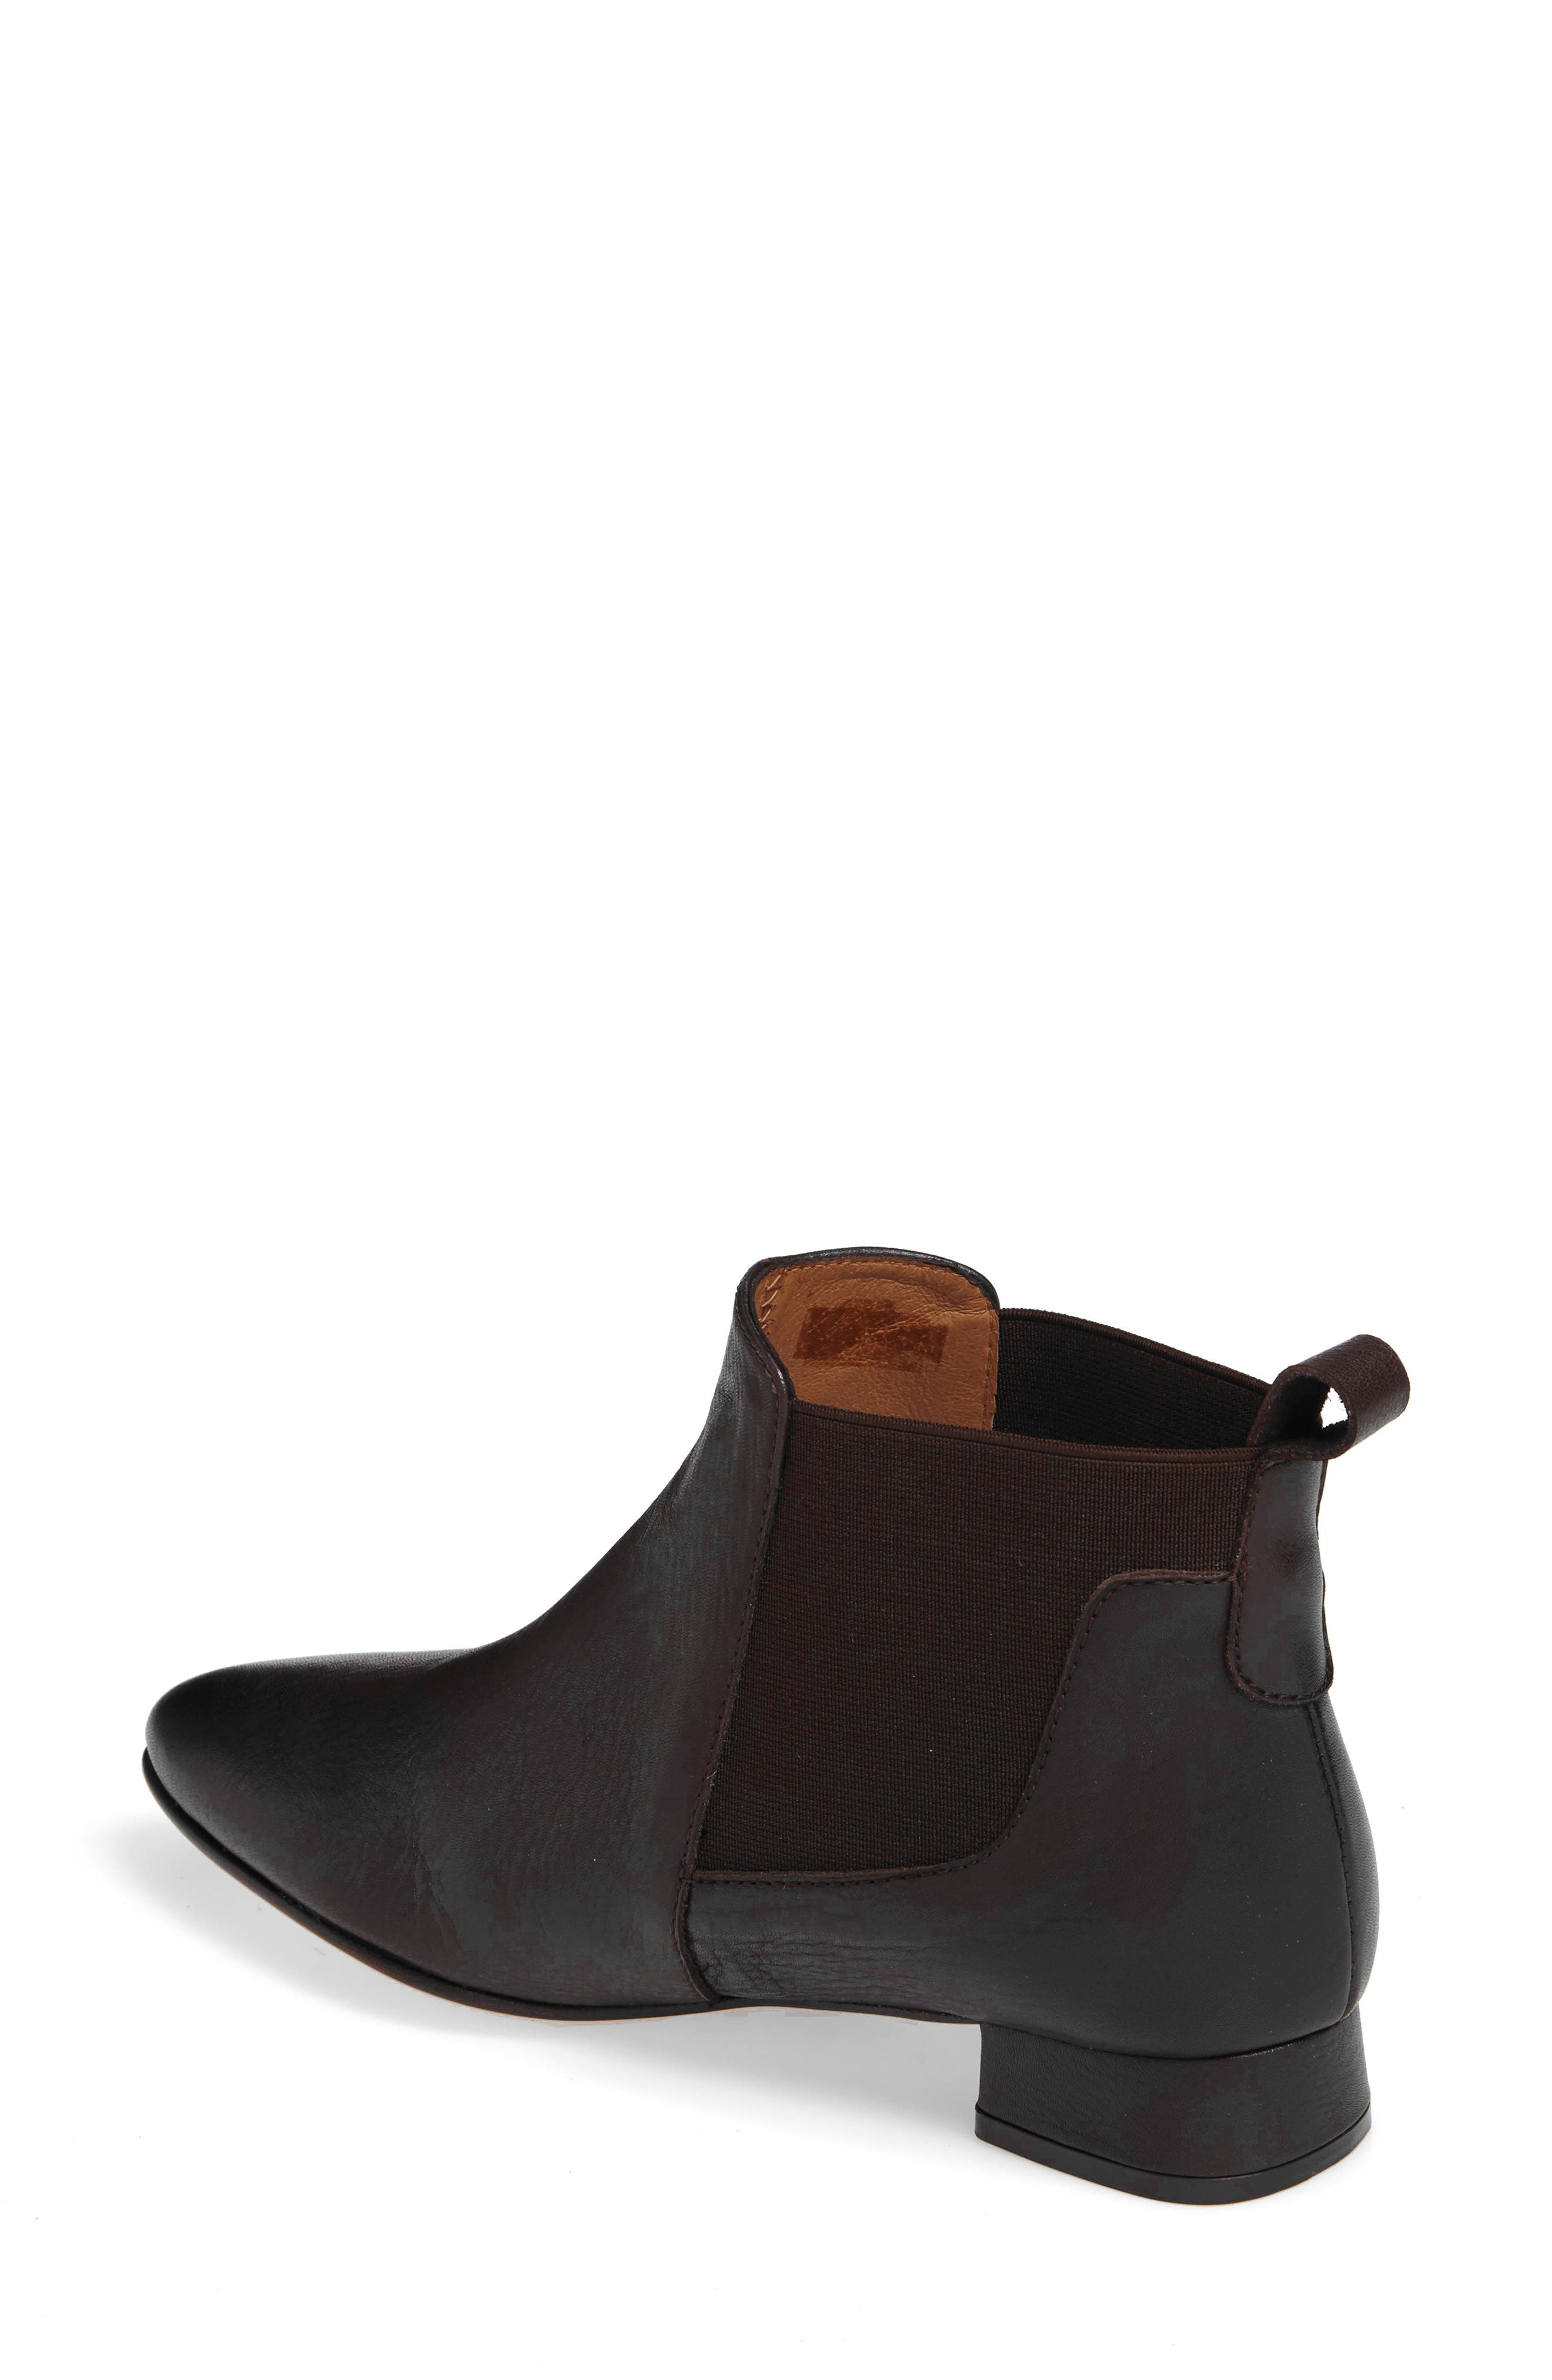 Newbury Bootie,                             Alternate thumbnail 2, color,                             Chocolate Leather